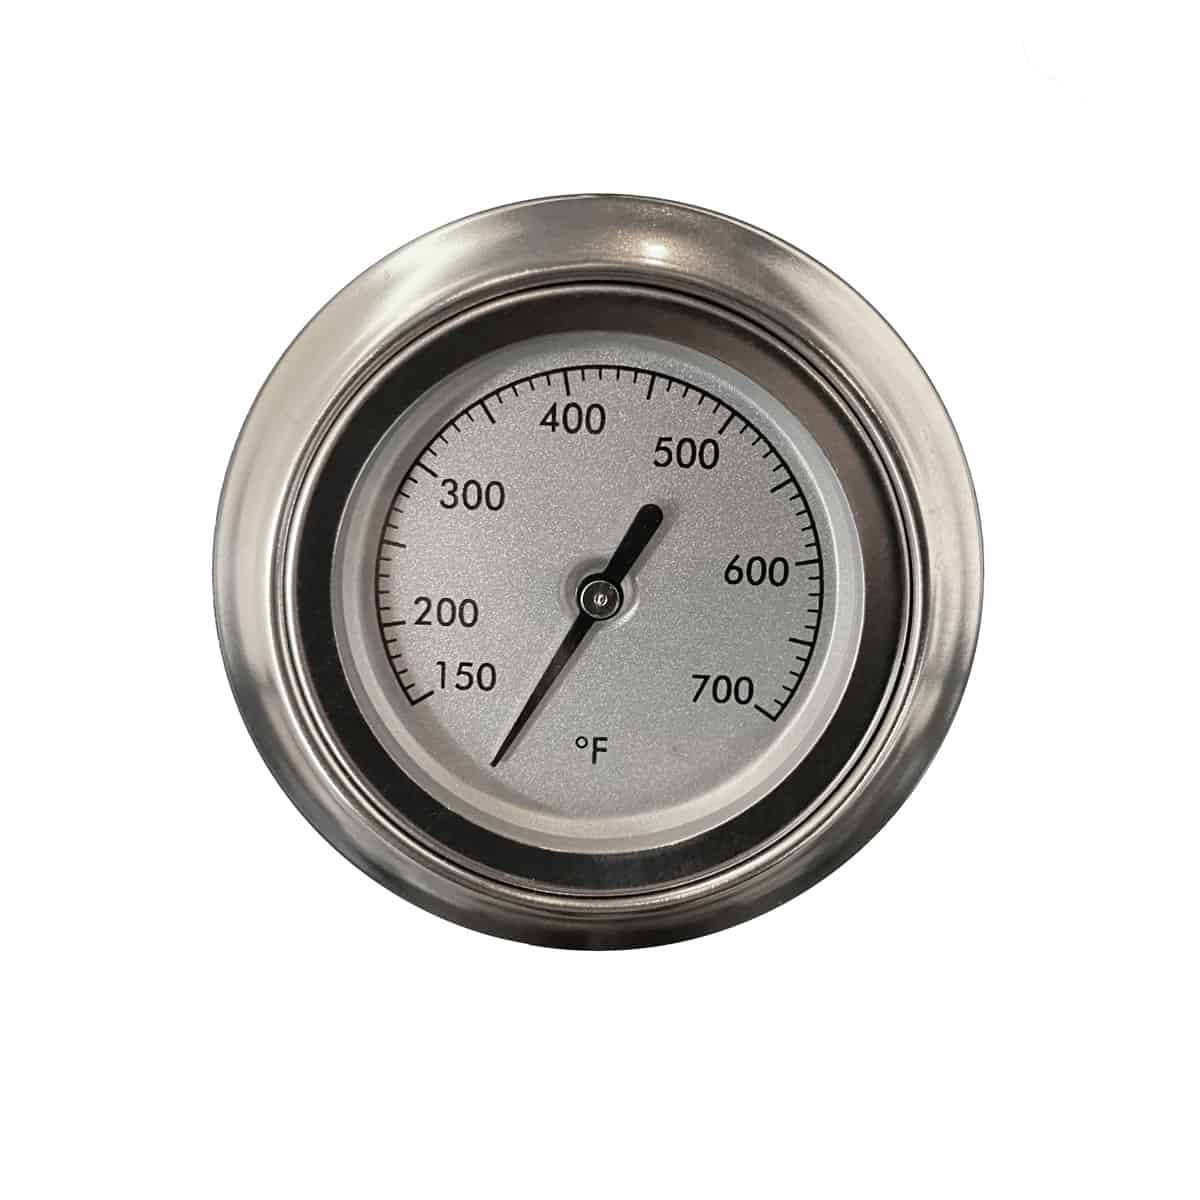 Broilmaster Gas Grill Heat Indicator Tempeture Gauge Fits All Models DPP155 New